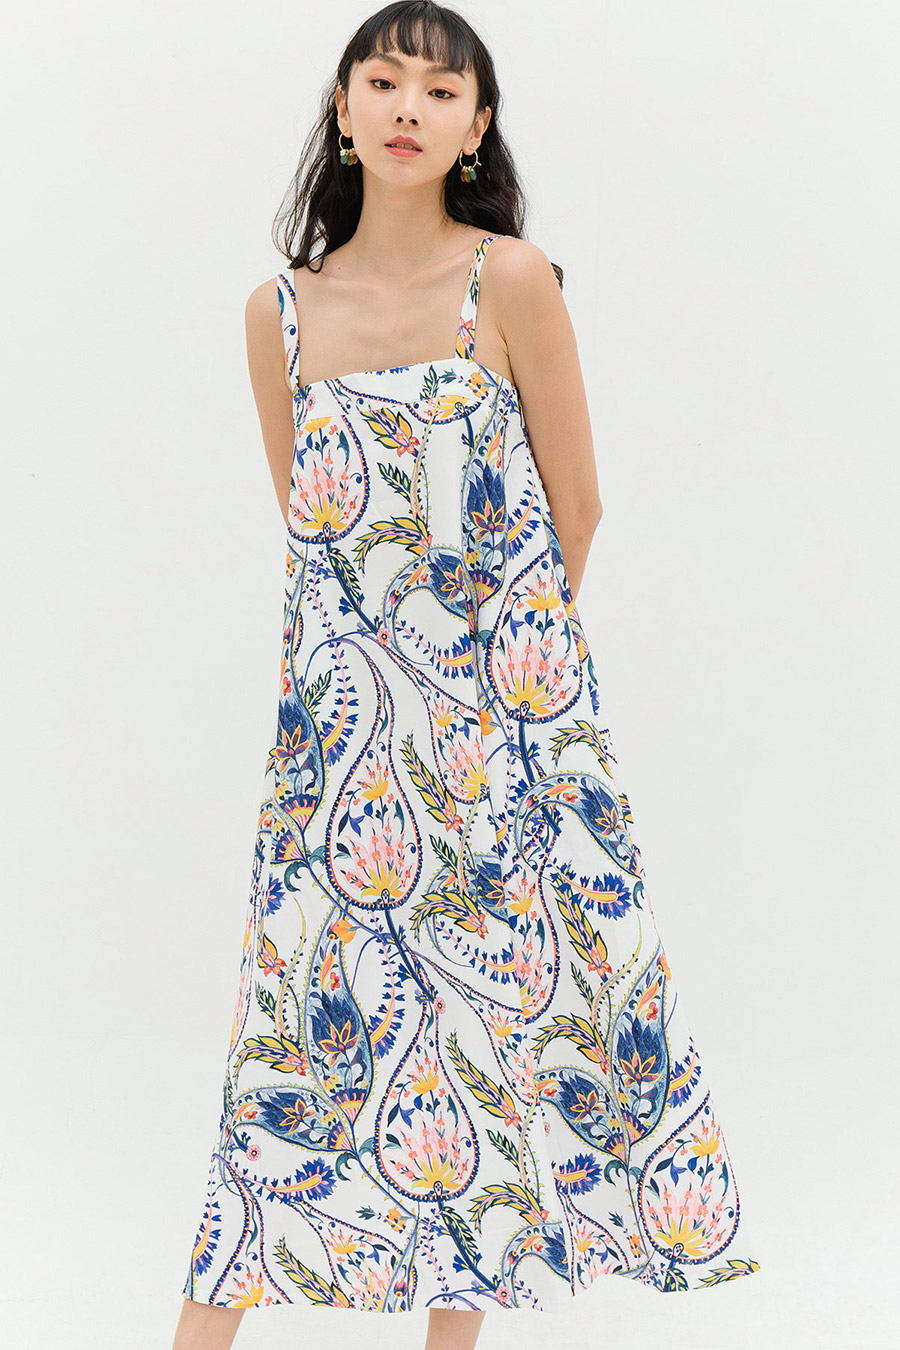 *RESTOCKED* FILY DRESS - CLOUD PAISLEY [BY MODPARADE]